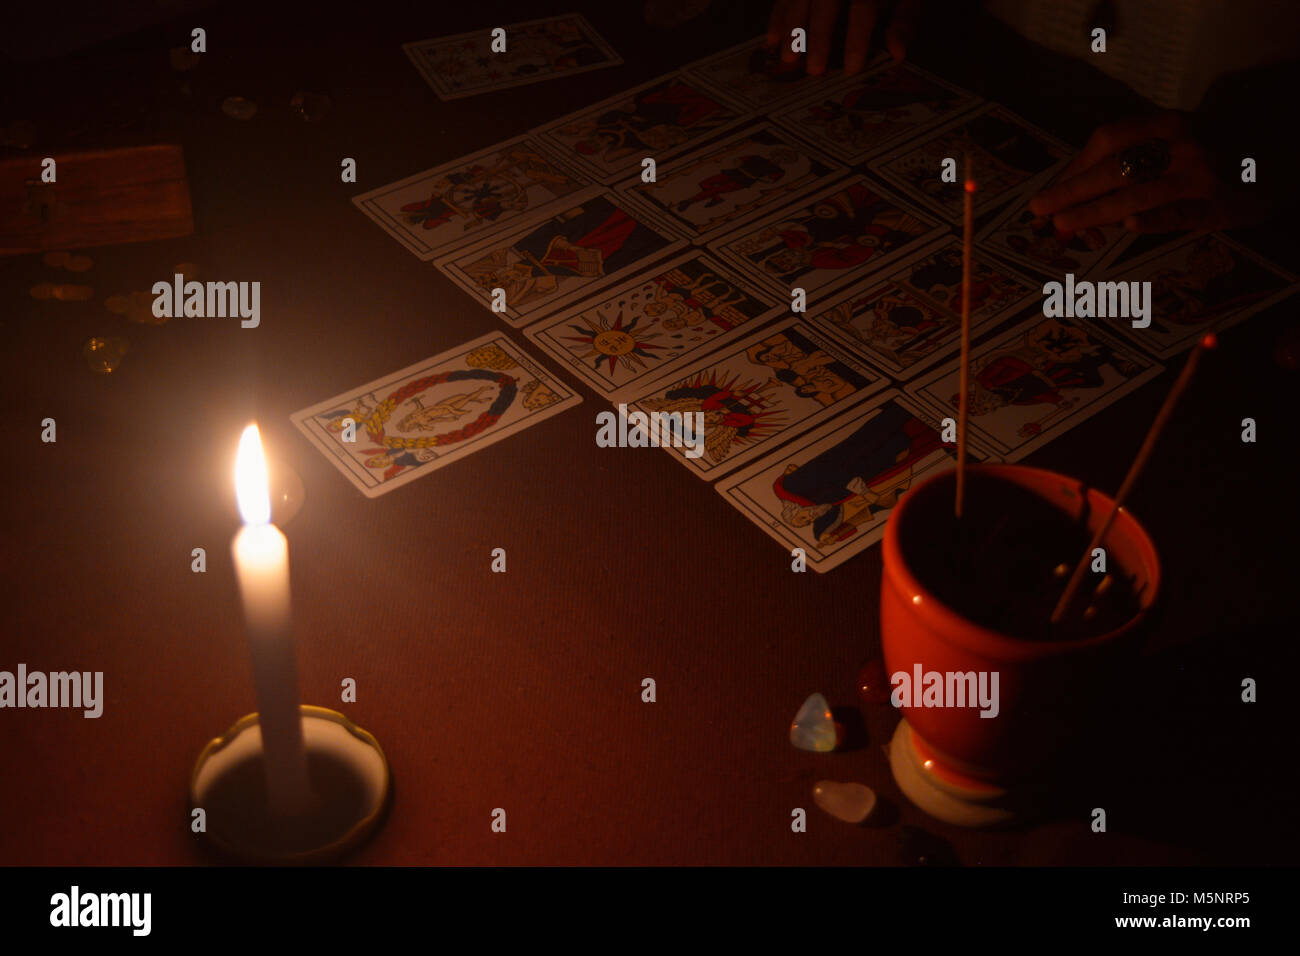 Tarot table by candle light - Stock Image